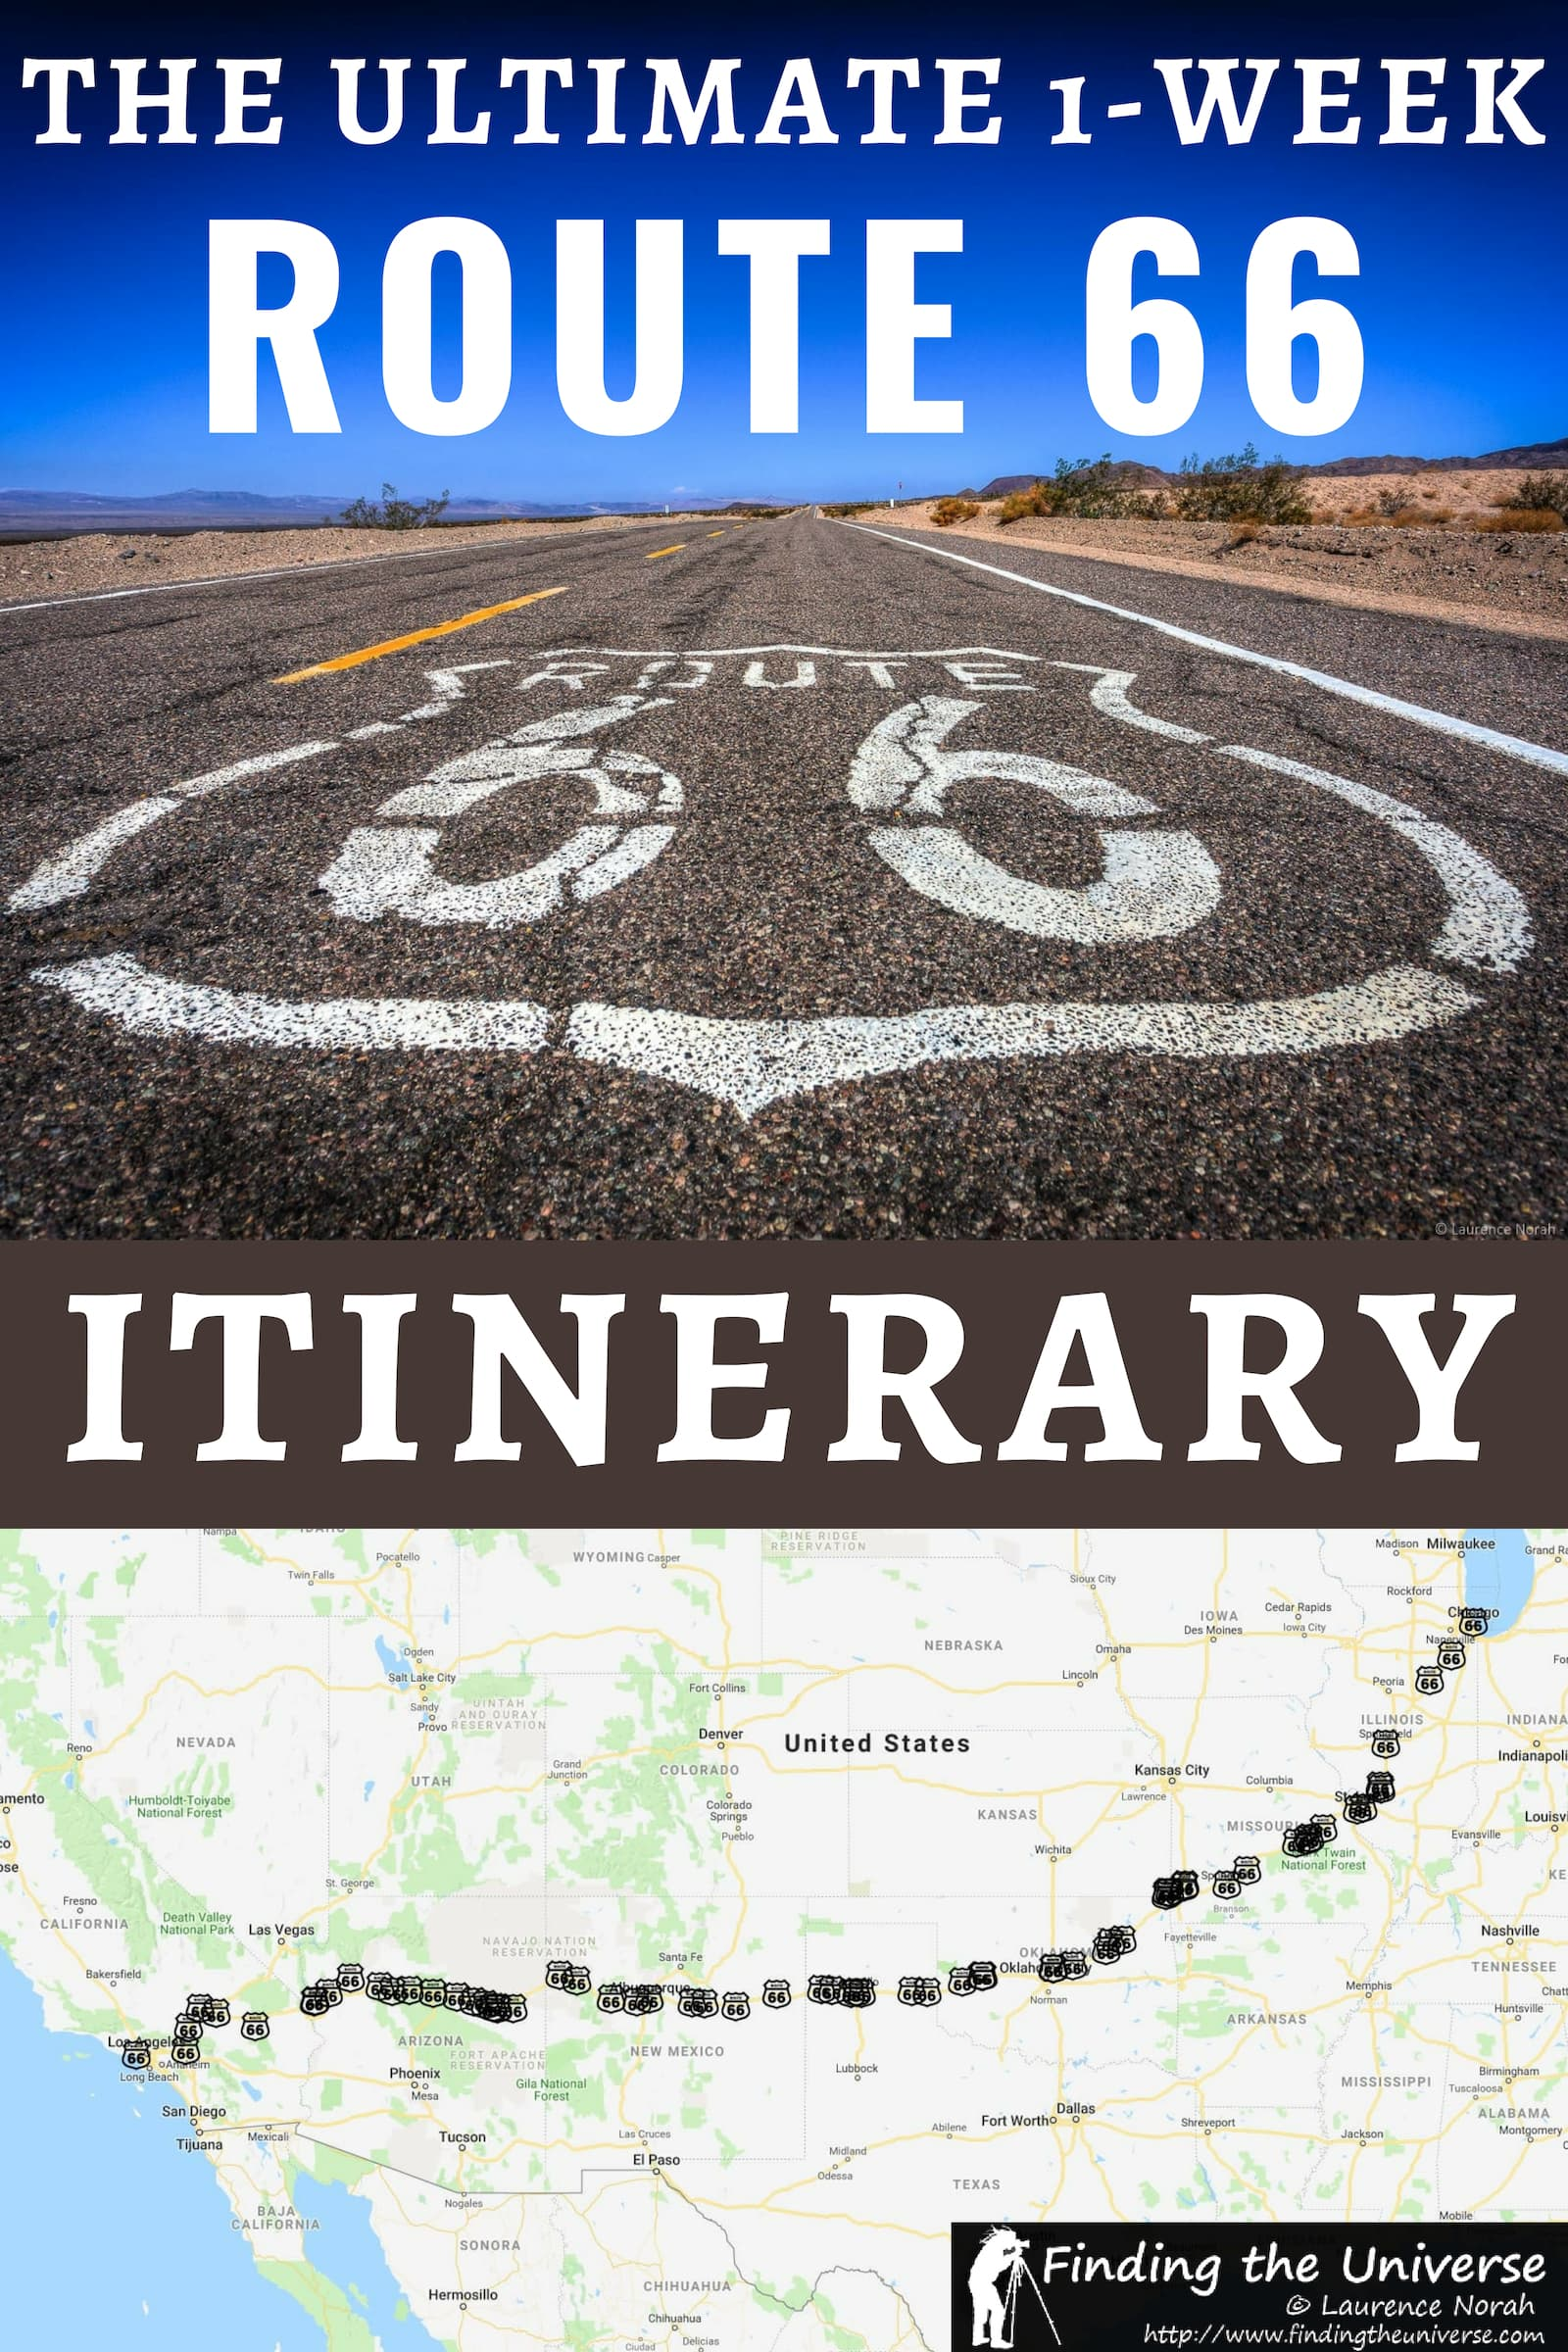 The perfect 1 Week Route 66 USA road trip itinerary. Day by day instructions for the trip, plus all the attractions, lodging options, and map of the route!